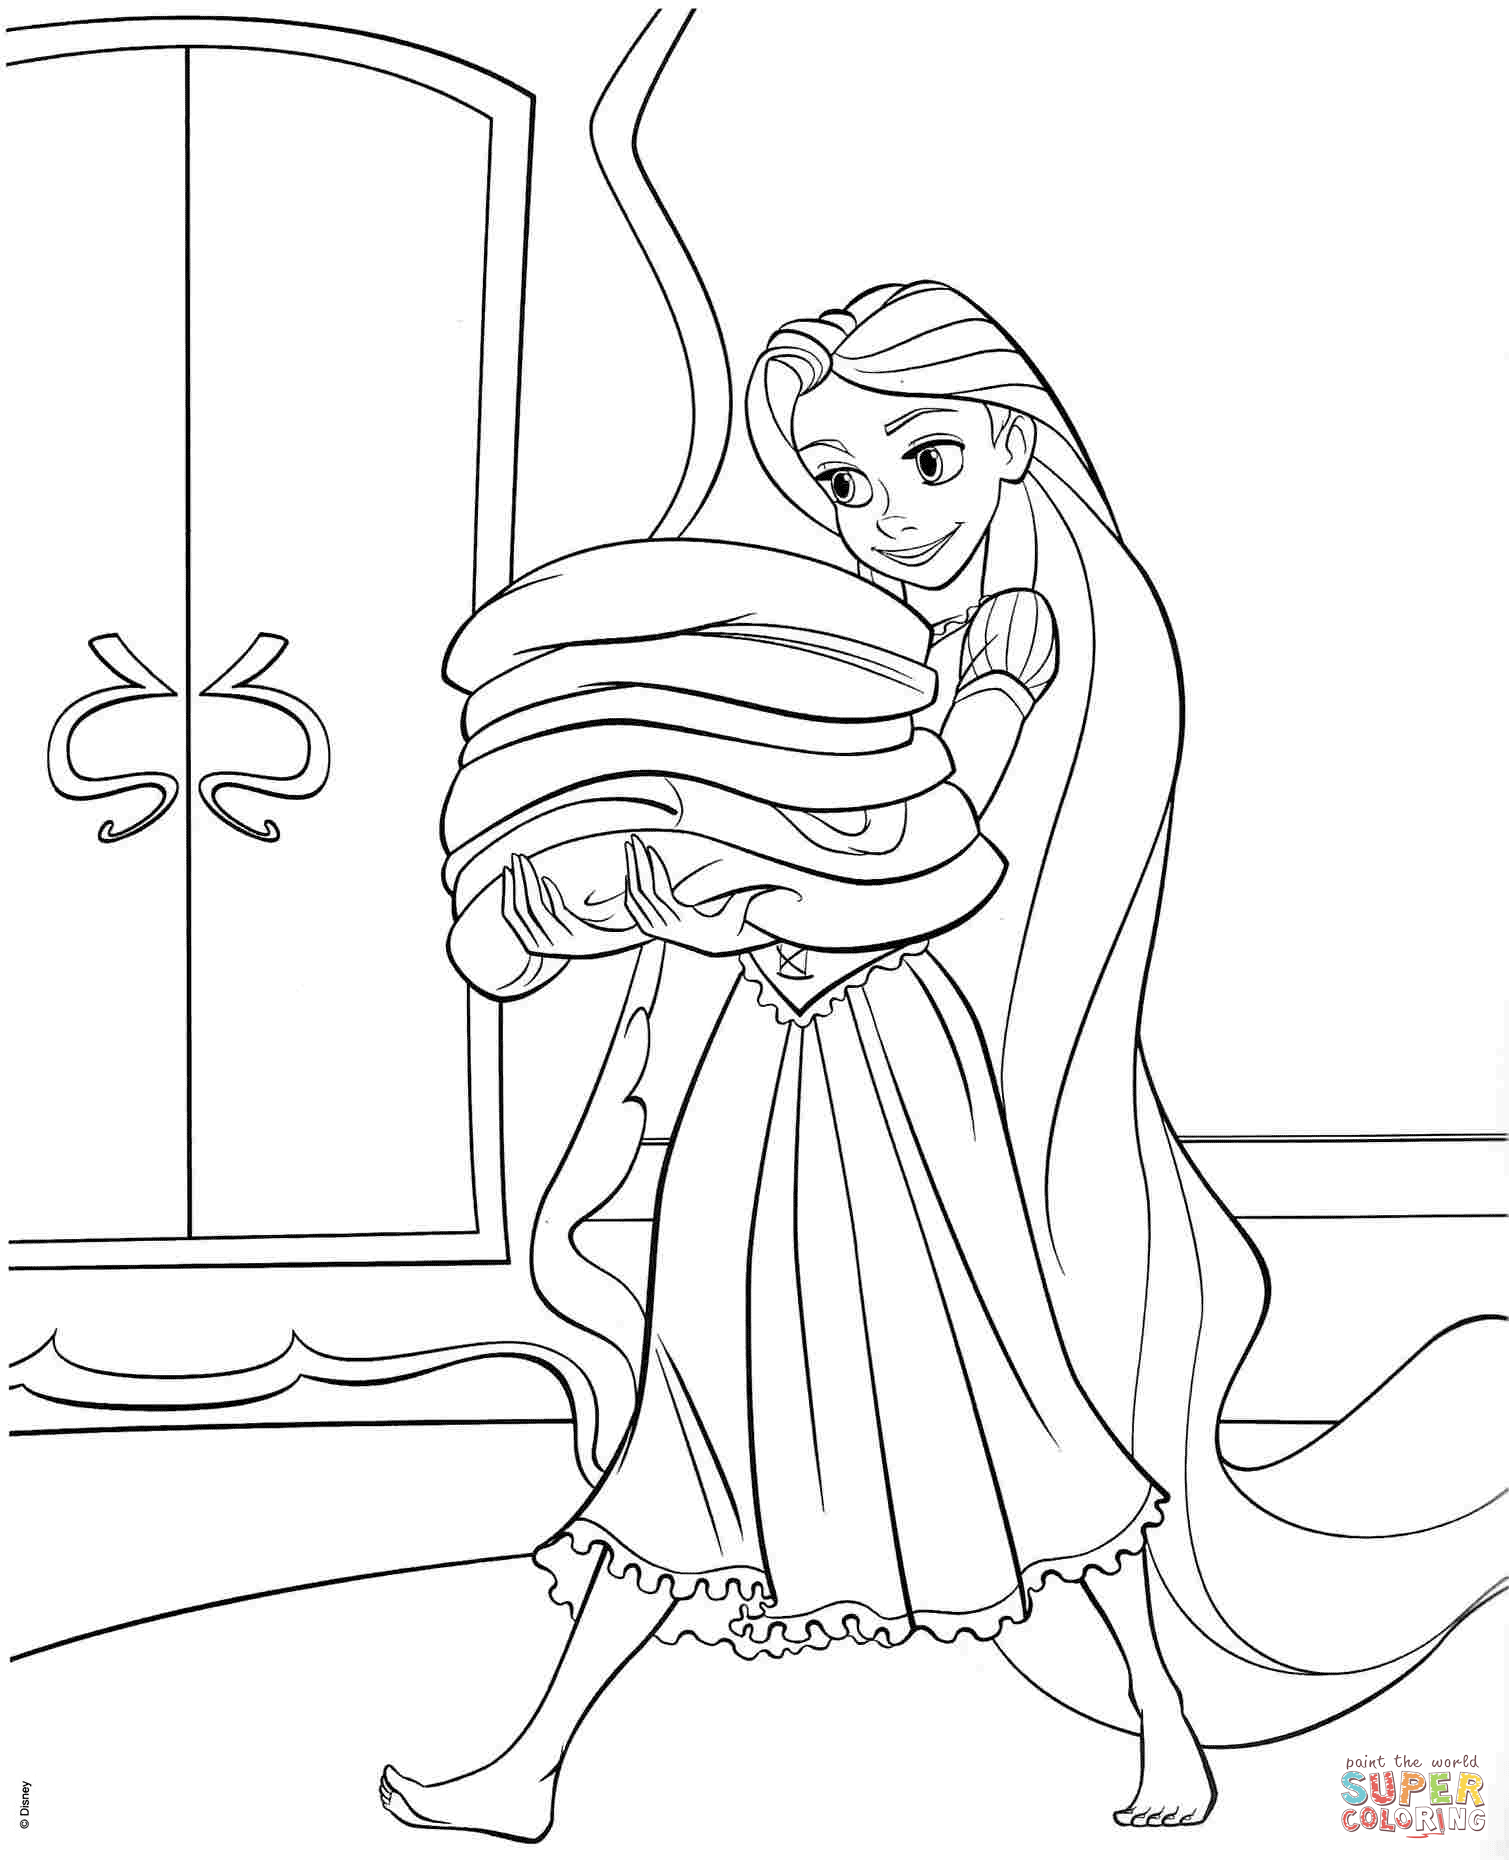 Tangled Rapunzel Coloring Pages Tangled Rapunzel Coloring Page - tangled coloring pages pdf